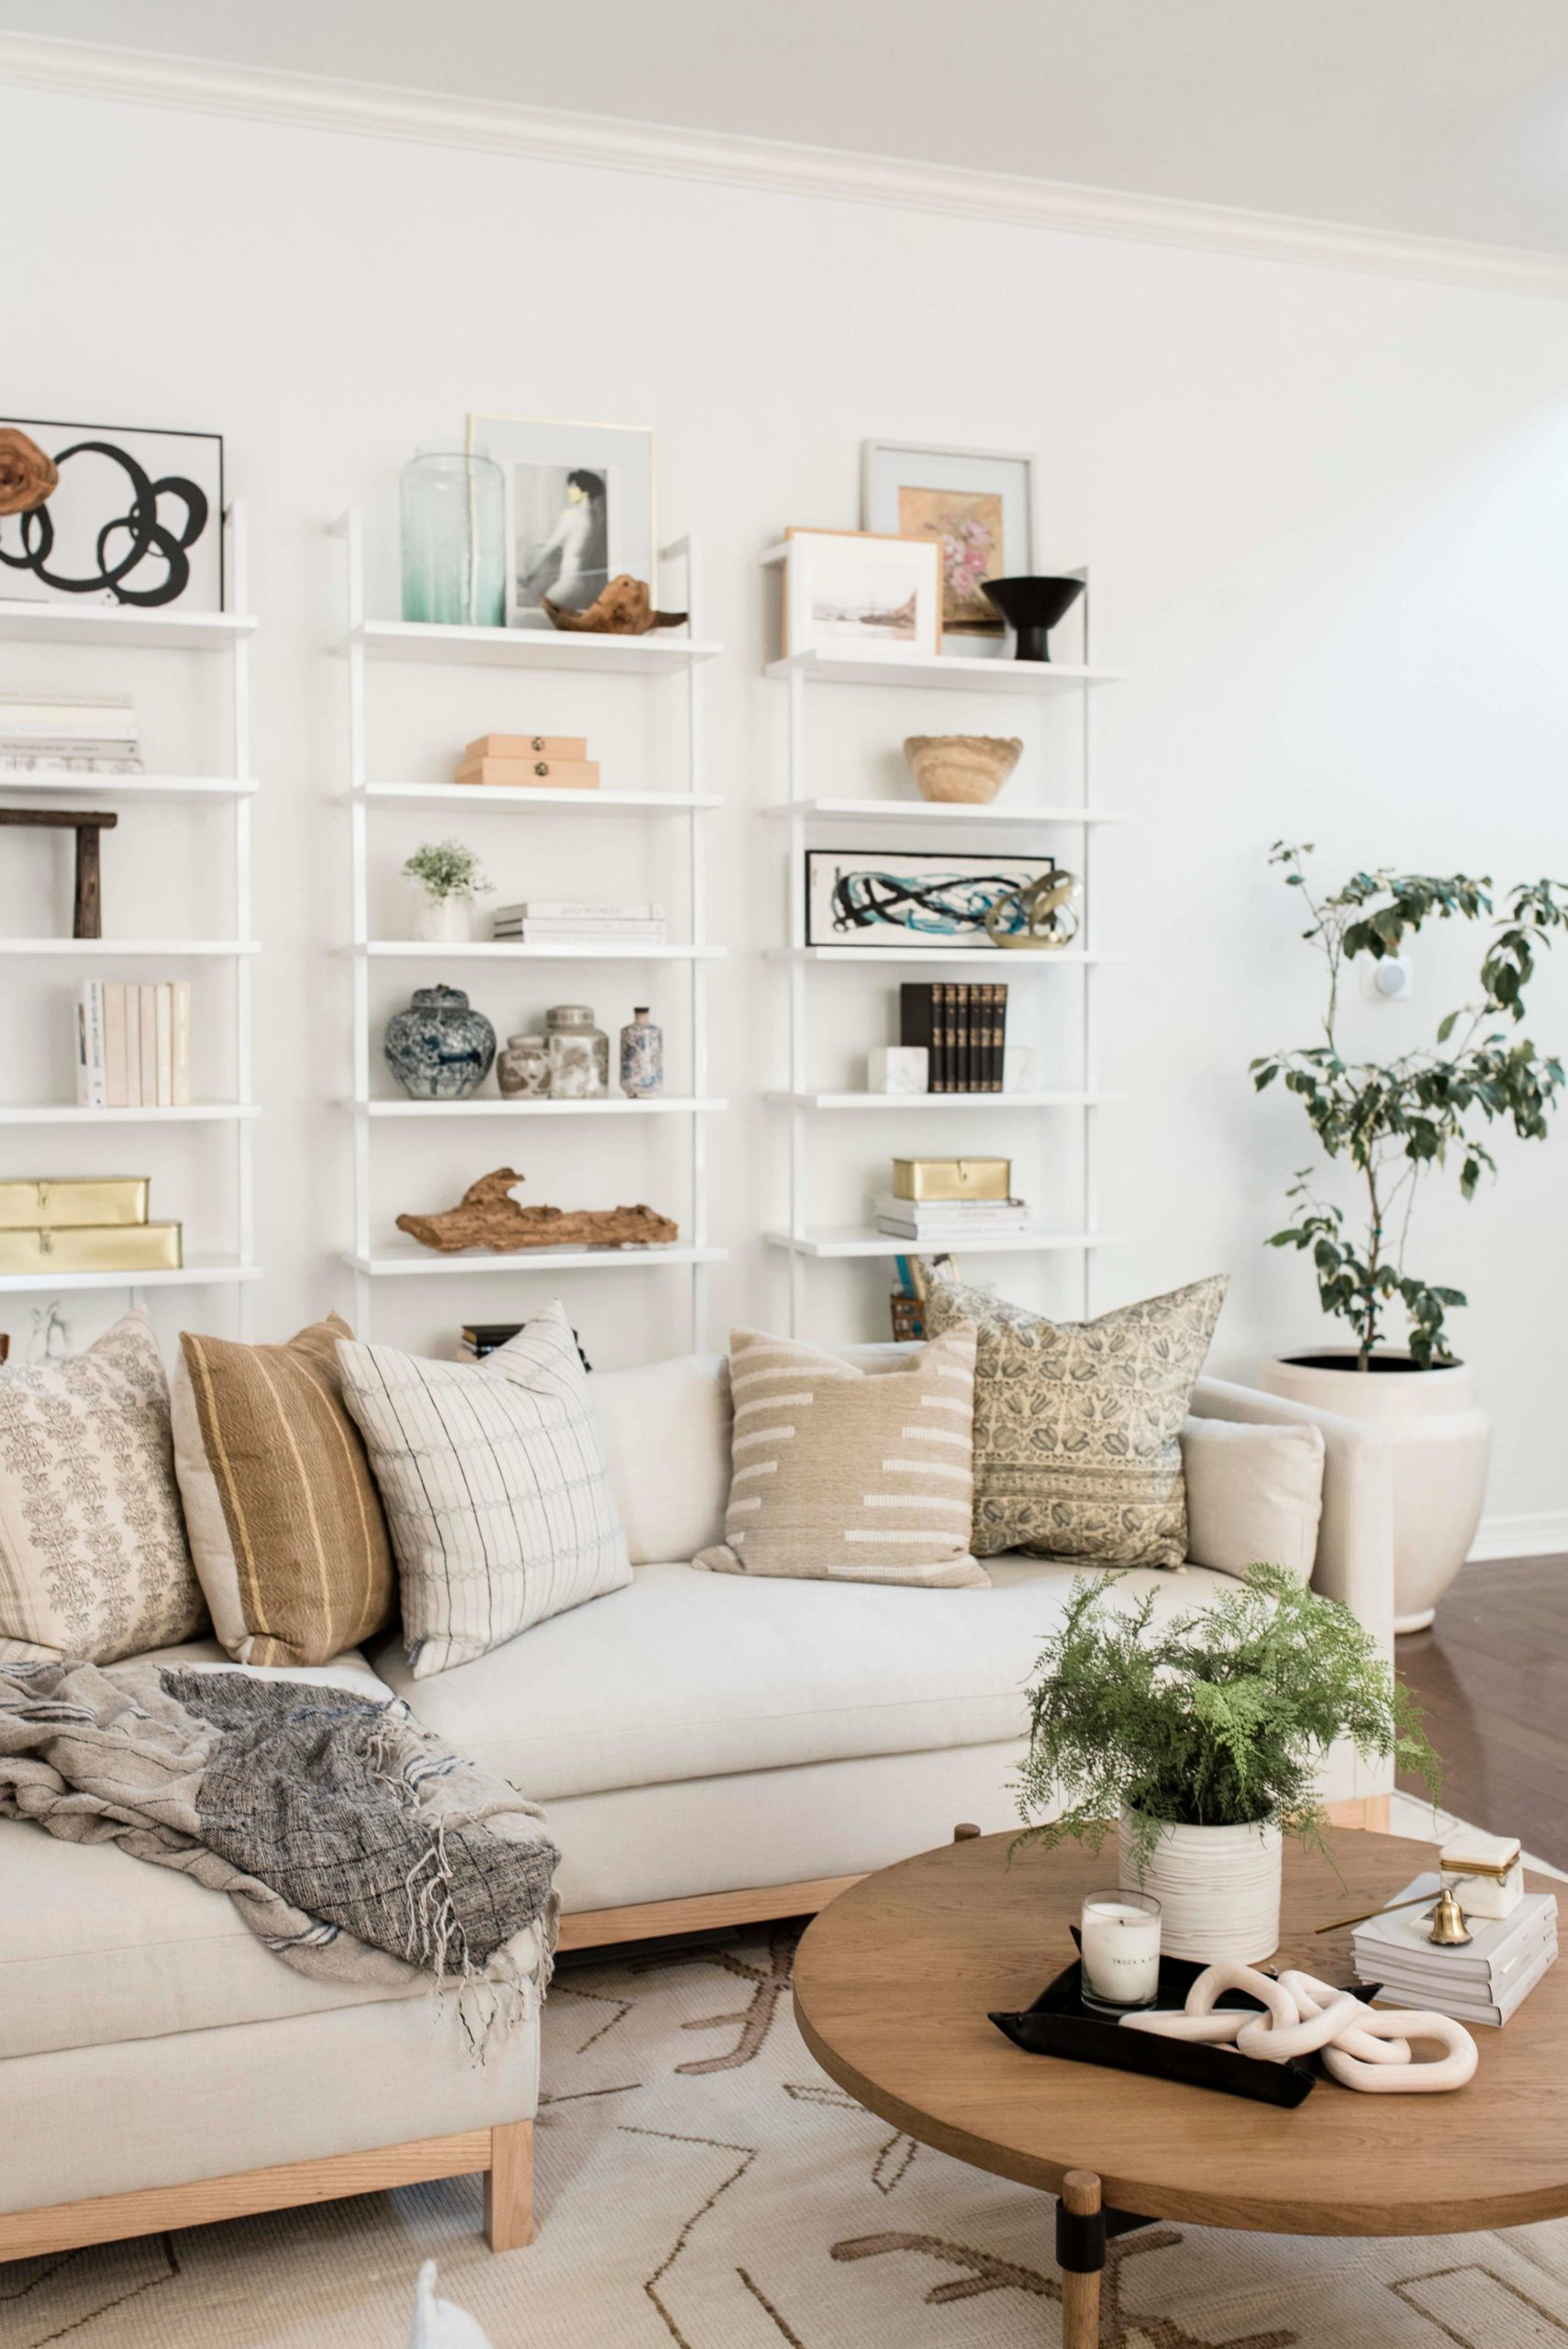 Cosy and Bright White Living Room GMDxLG Furniture Collection Hollingworth Sofa by Los Angeles Designer Ginny Macdonald Design